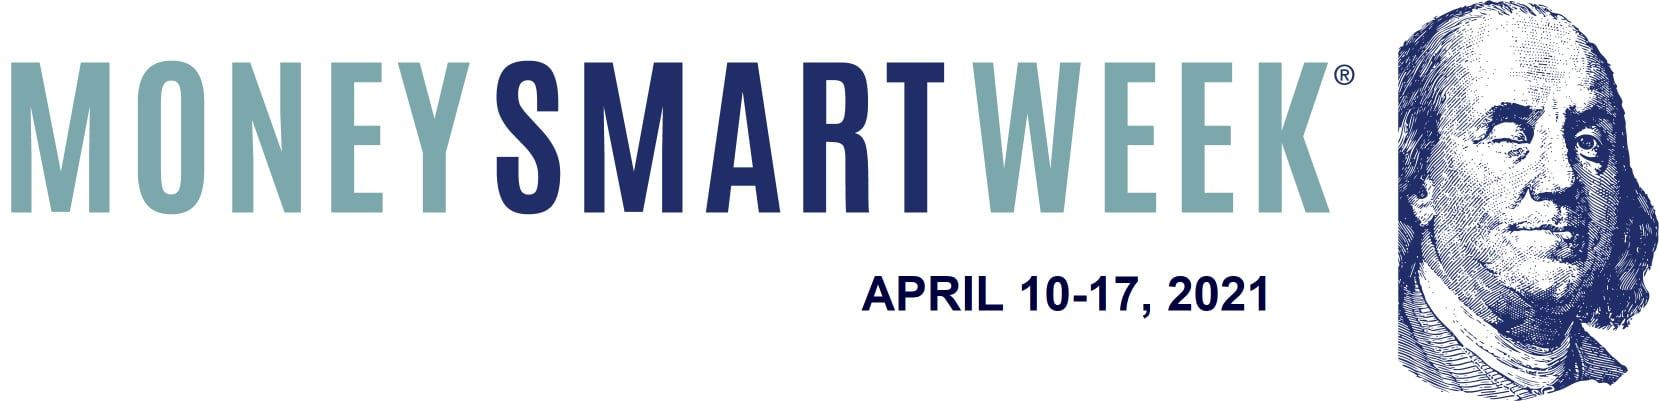 Money Smart Week banner